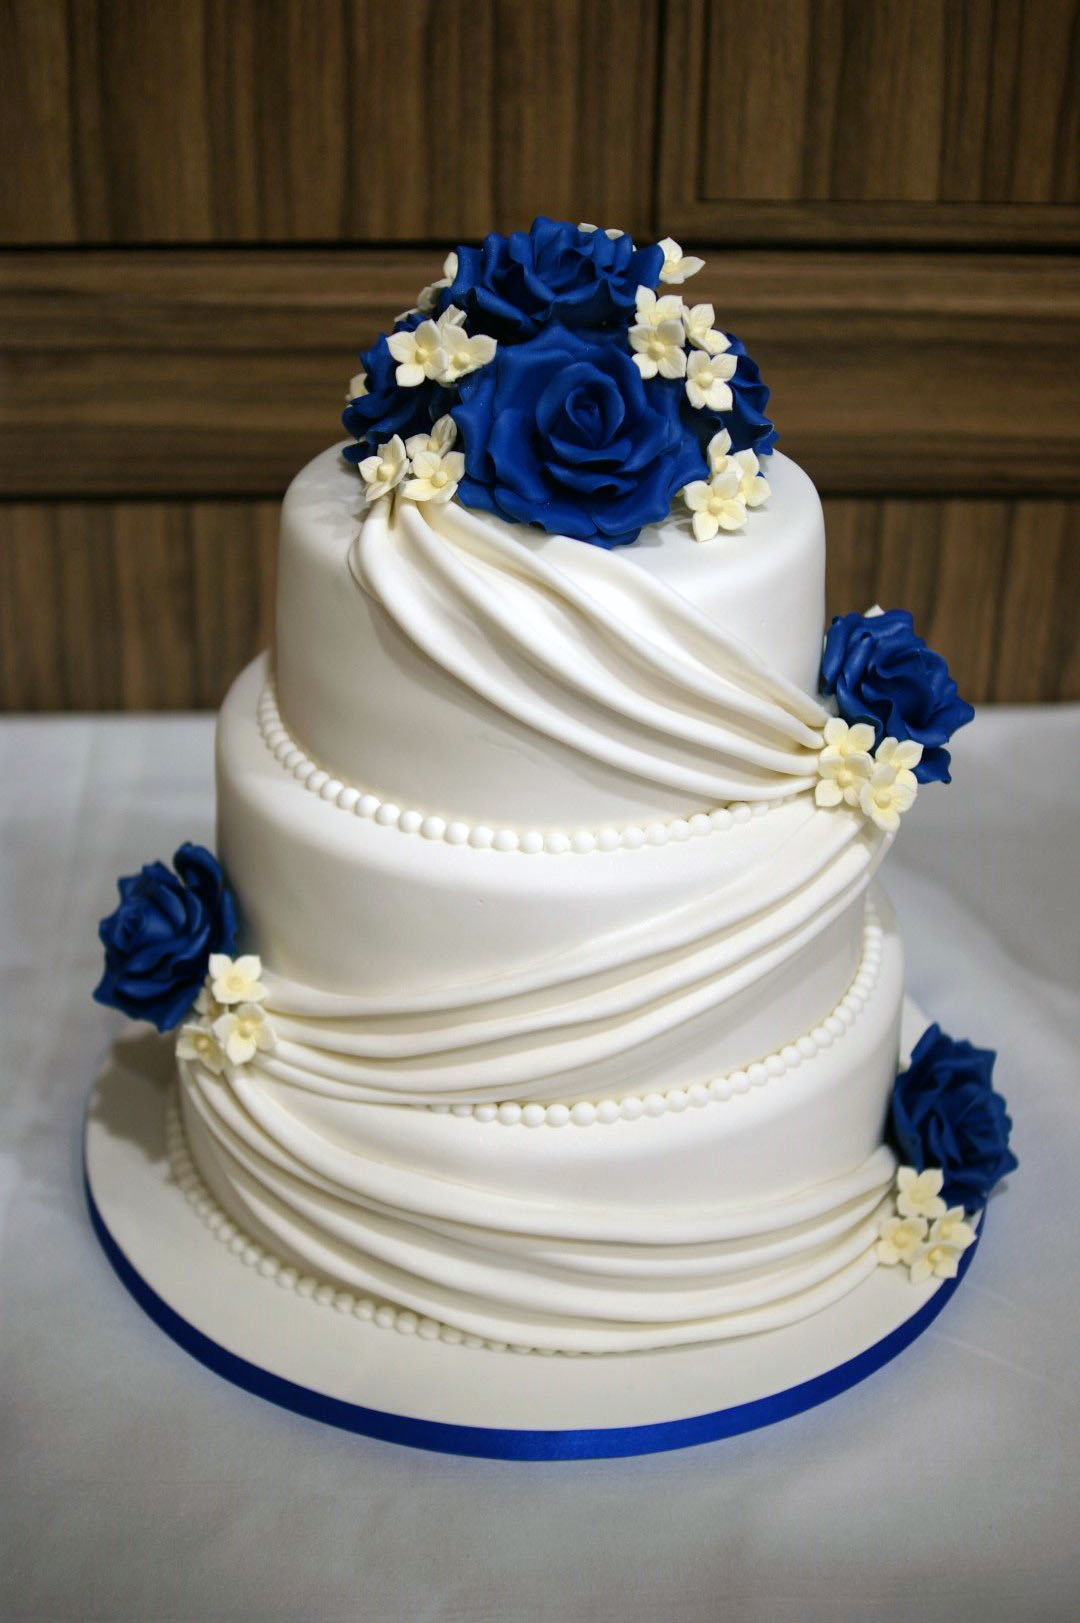 pictures of 3 tier wedding cakes 3 tier wedding cake drapes and roses with cupcake tower 10 jpg 18380